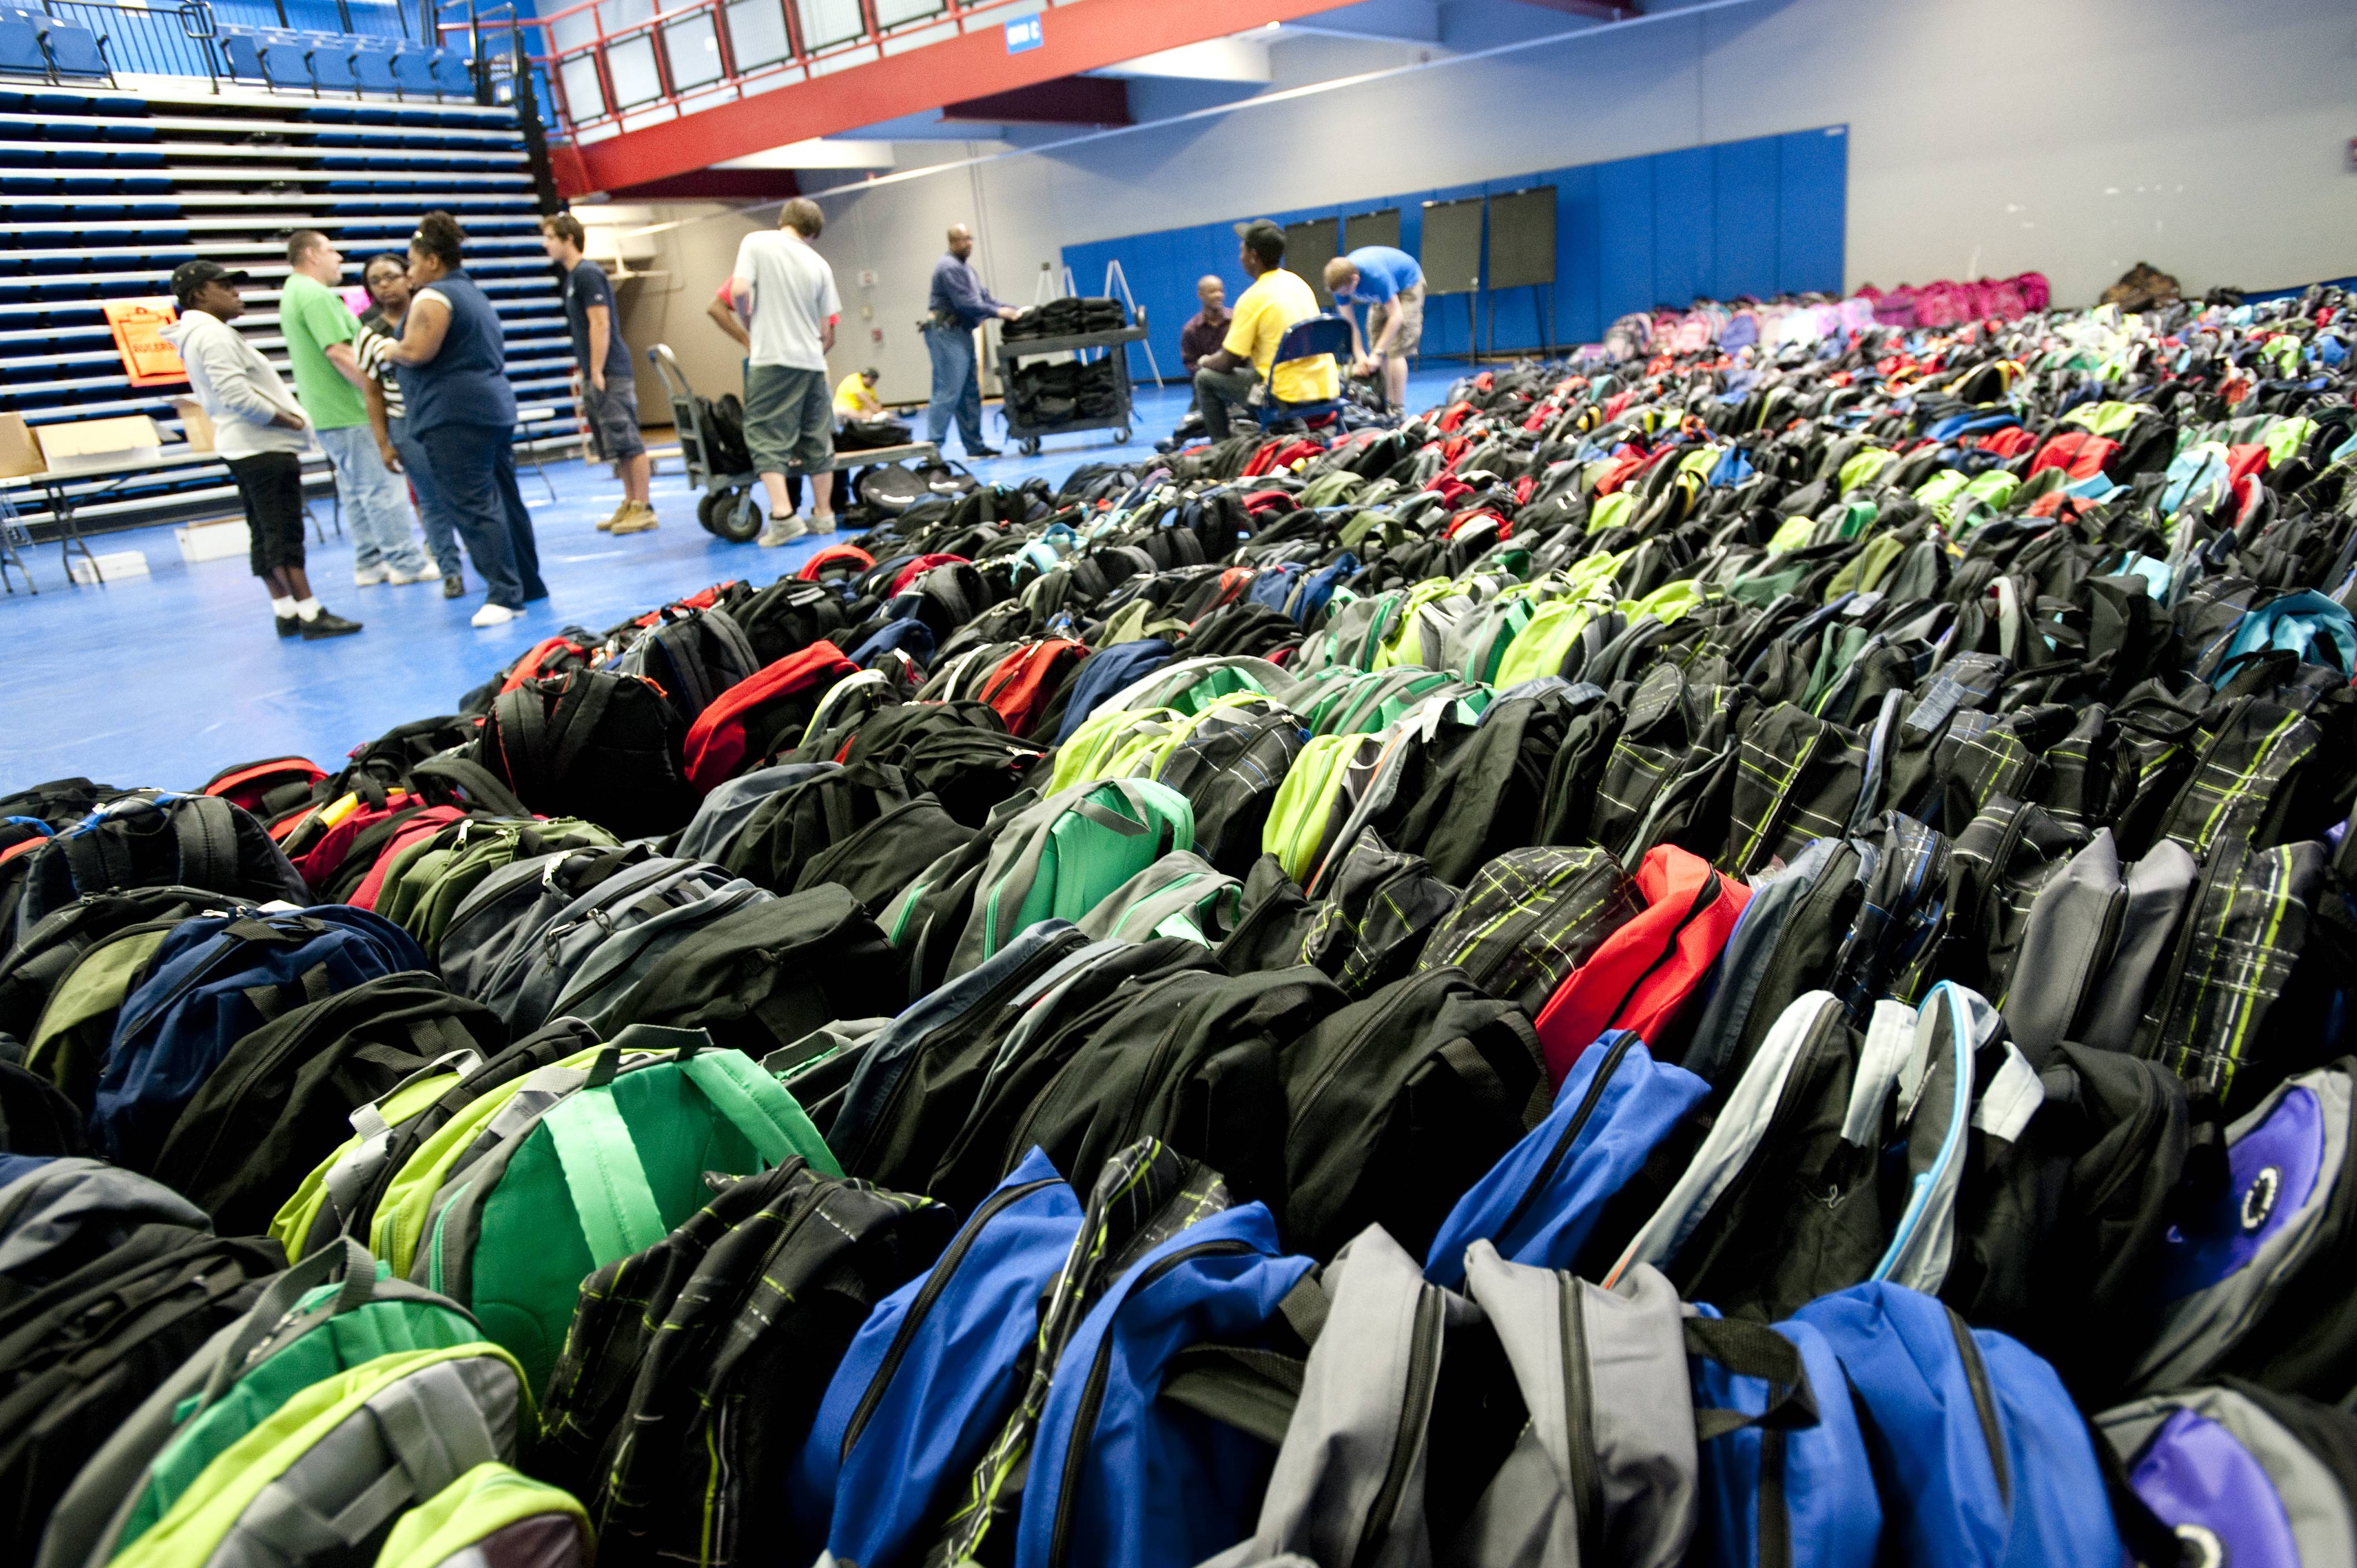 Elgin Community College and its partners will give away thousands of backpacks filled with school supplies and food to students in need Saturday during the fifth Project Backpack.